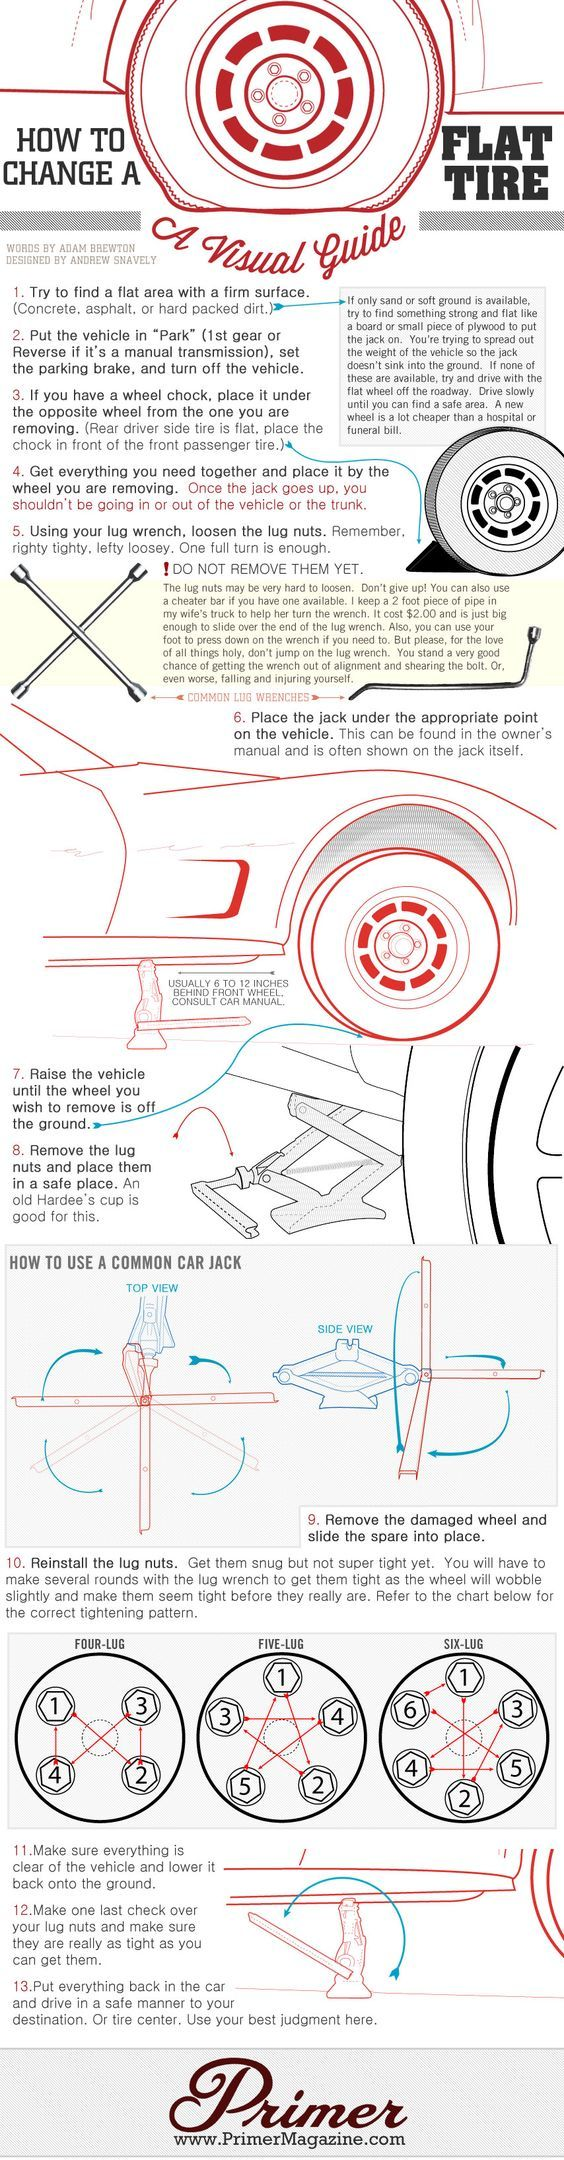 hight resolution of how to change a flat tire visual guide yes a properly running car is a fabulous accessory